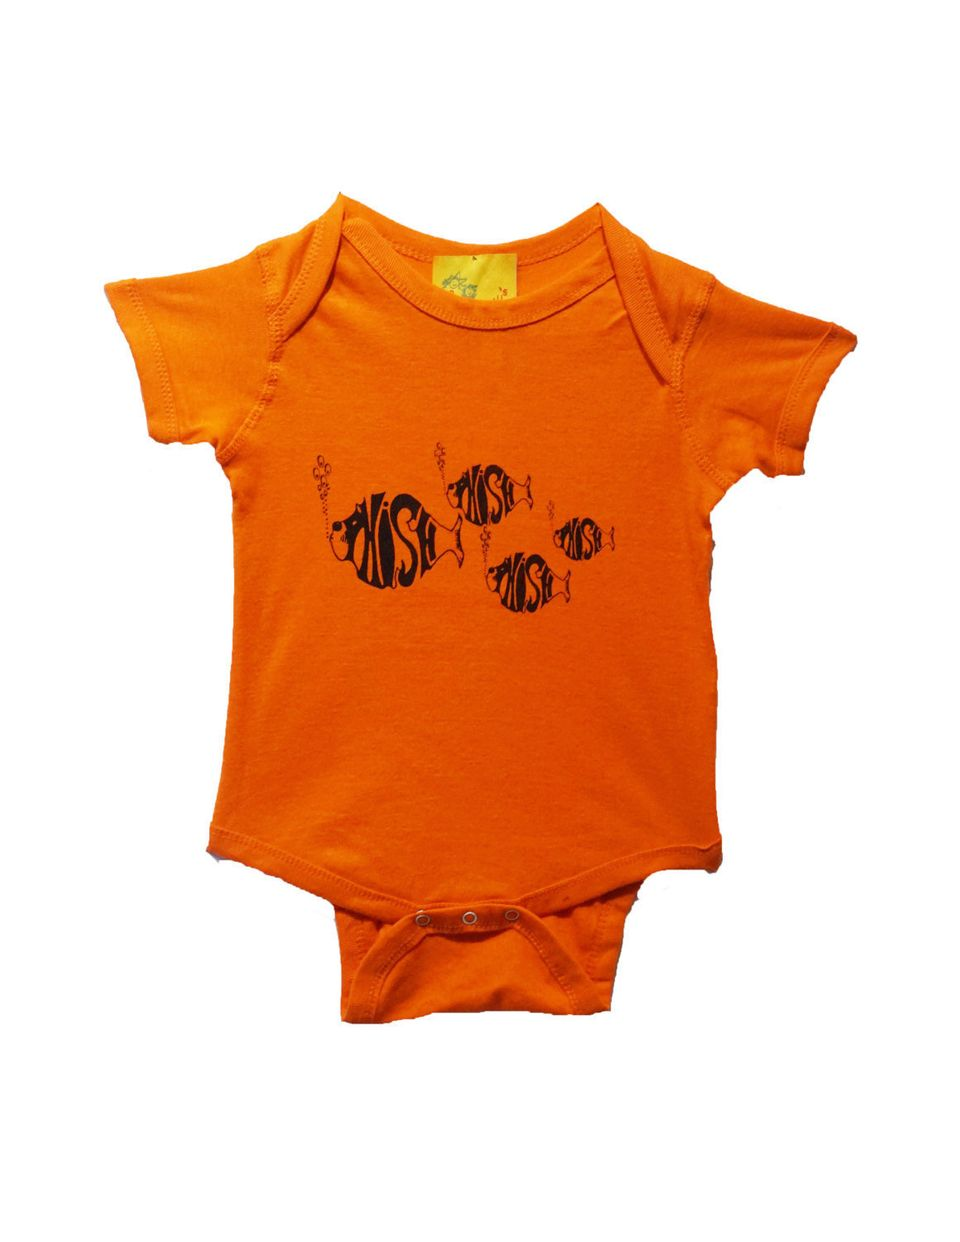 8ad0f9b57 39 Baby Products For Parents Who Love Phish | HuffPost Life